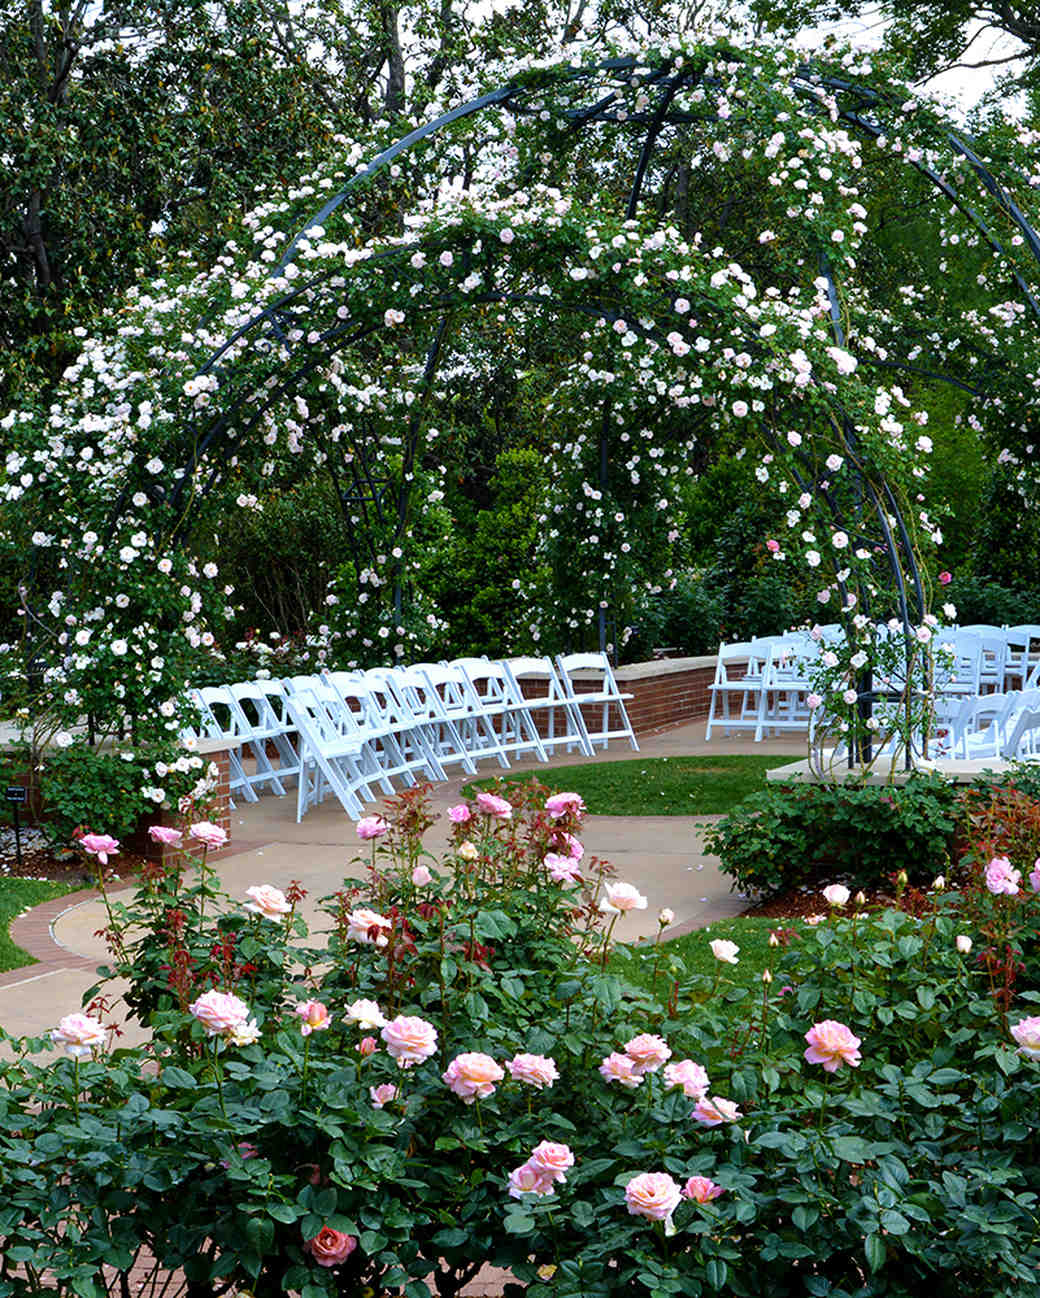 Romantic Garden Wedding Ideas In Bloom: 18 Beautiful Botanical Garden Wedding Venues